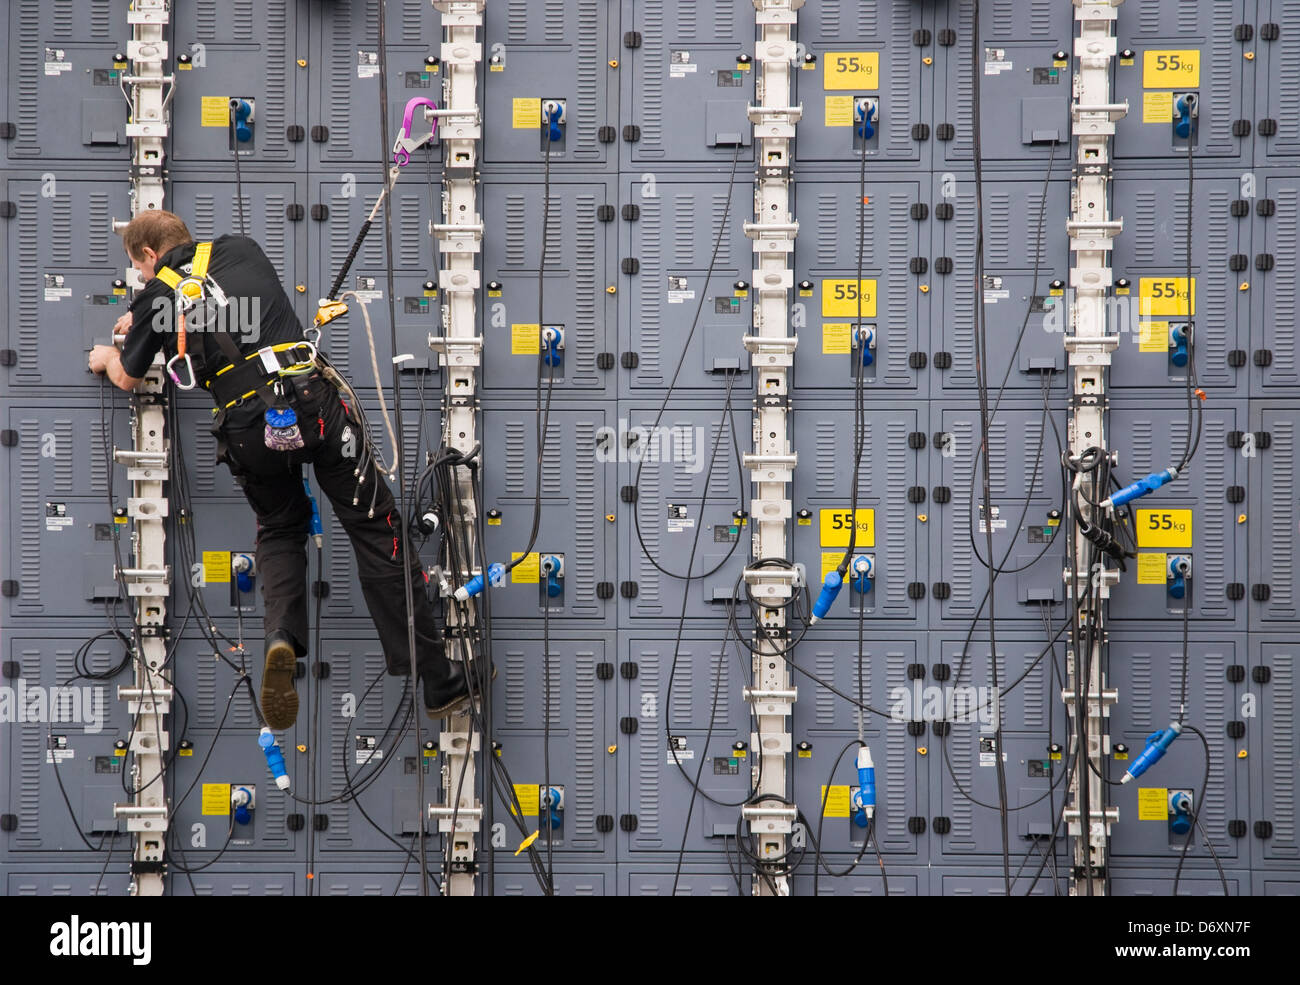 Video technician connecting video modules. - Stock Image